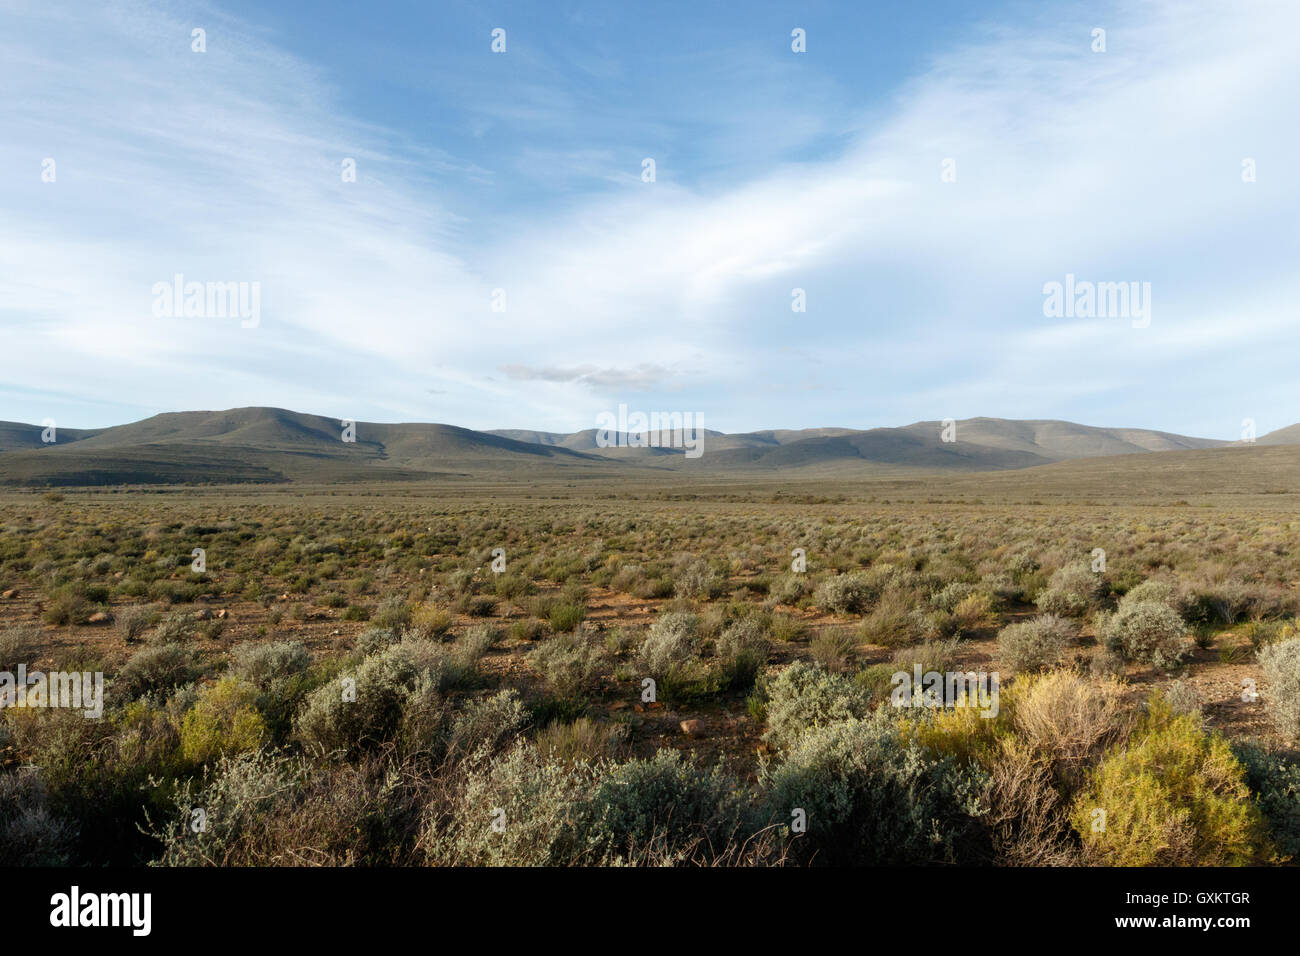 Green Mountains - Sutherland is a town with about 2,841 inhabitants in the Northern Cape province of South Africa. - Stock Image